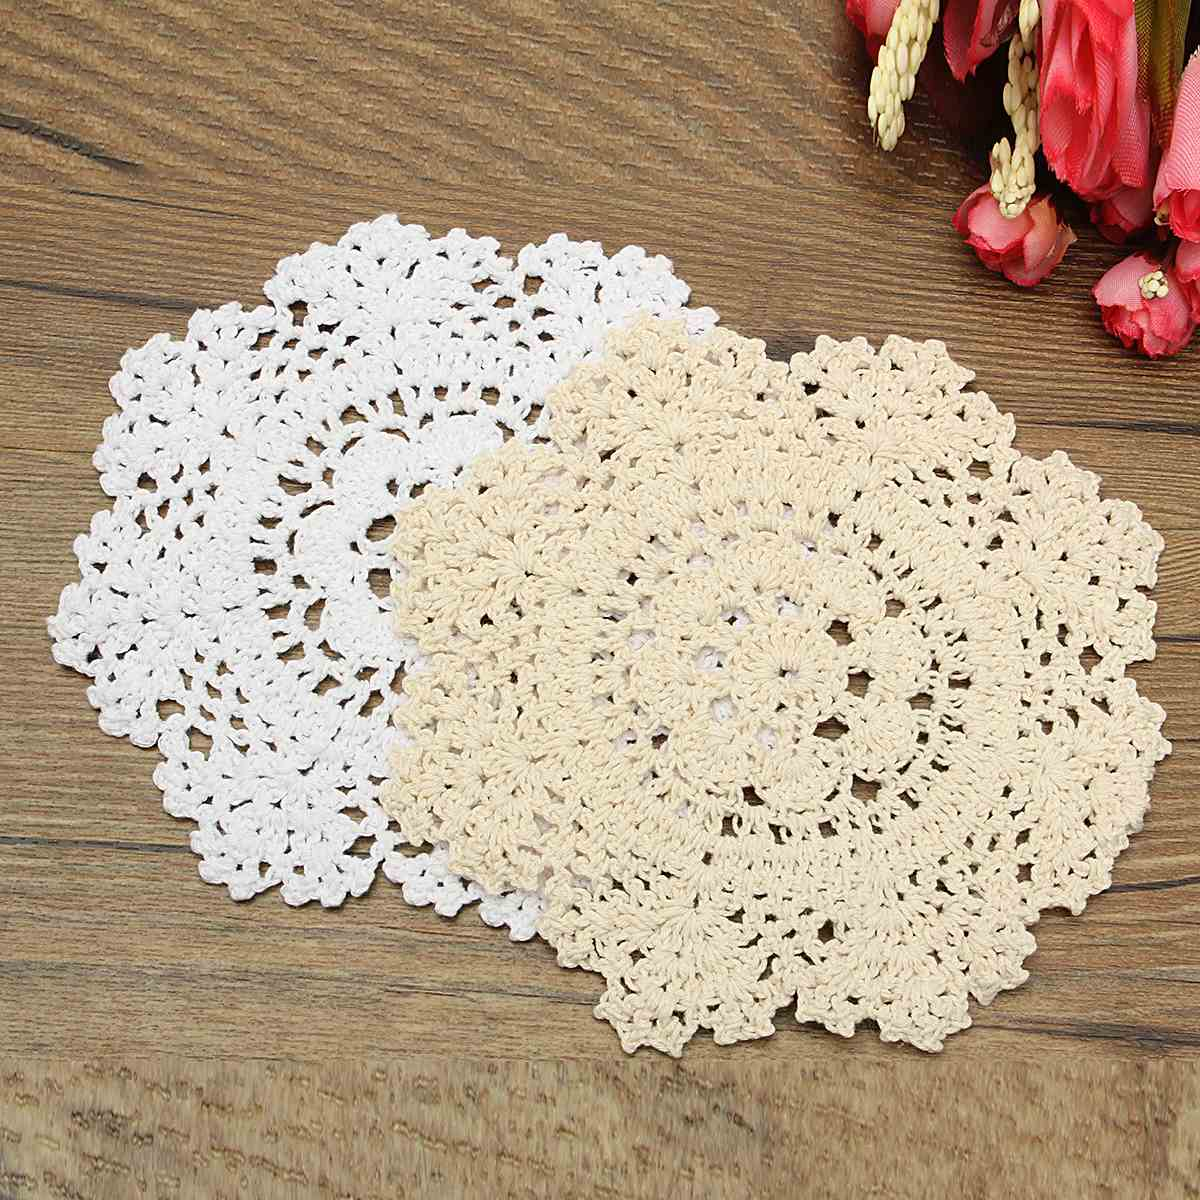 2 Colors Round Table Mat Placemat Hand Crocheted Lace Doilies Home Dining  Table Decorative Textiles Fabrics Cotton Yarn Coasters In Mats U0026 Pads From  Home ...